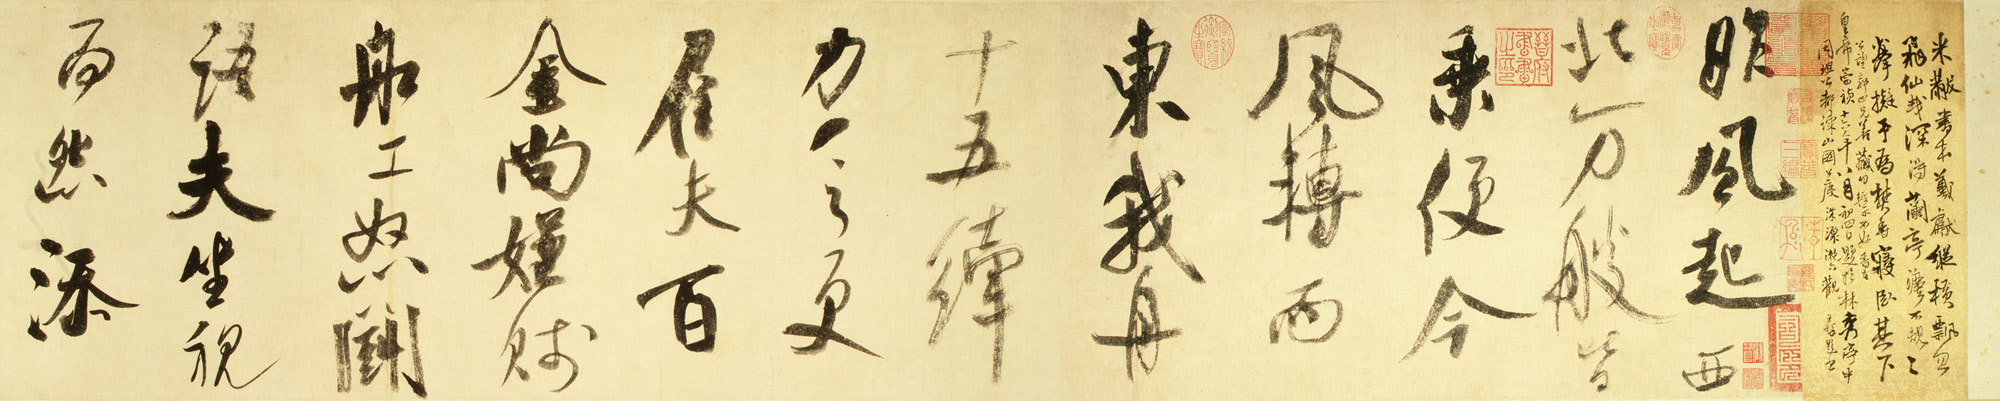 Ancient Chinese Symbols: calligraphy ancient china